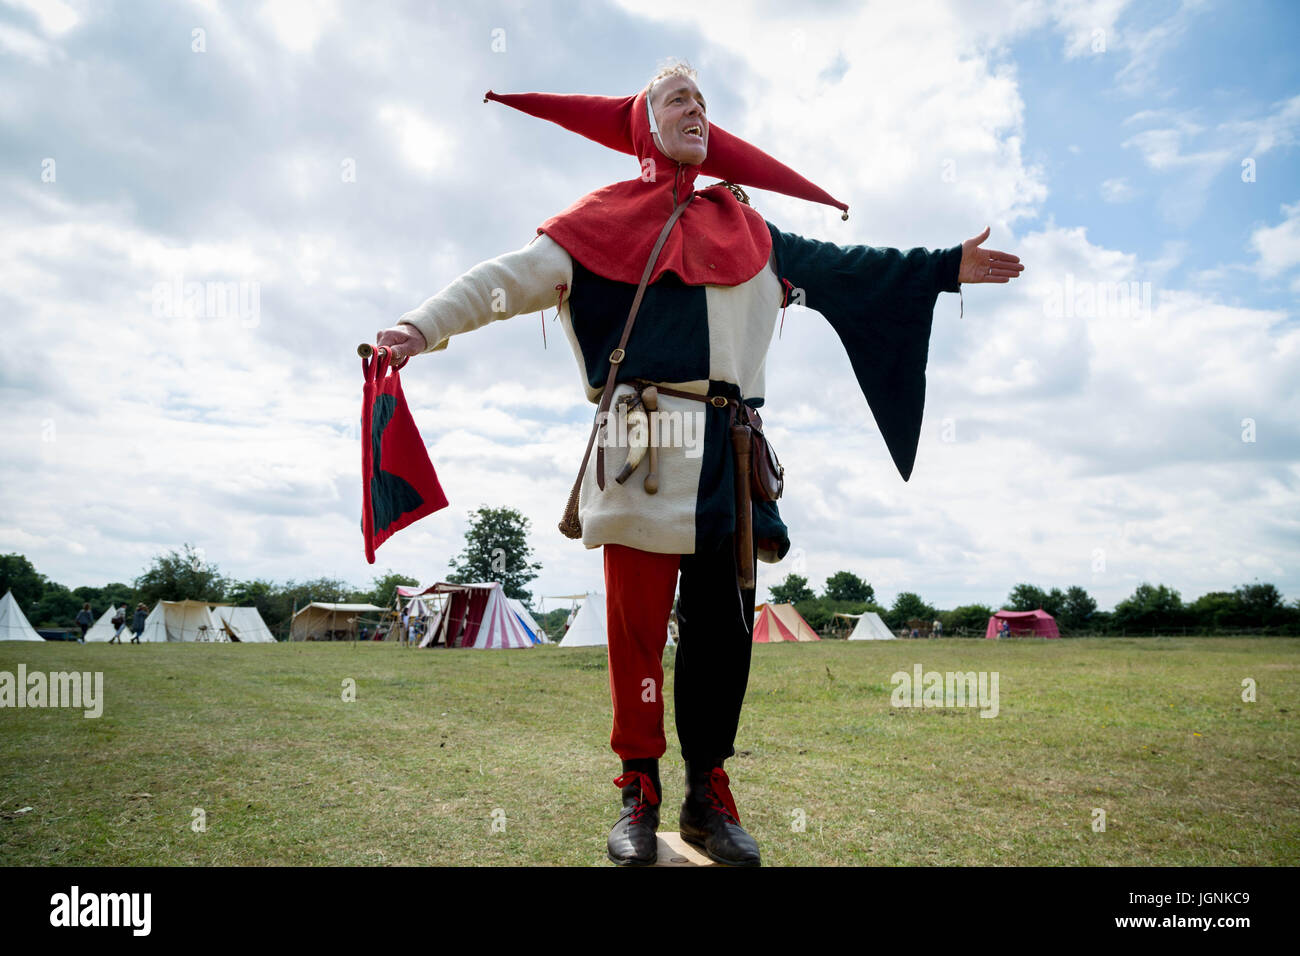 London, Eltham, UK. 8th July, 2017. Peterkin the Fool Jester performs at the Grand Medieval Joust, Eltham Palace. - Stock Image